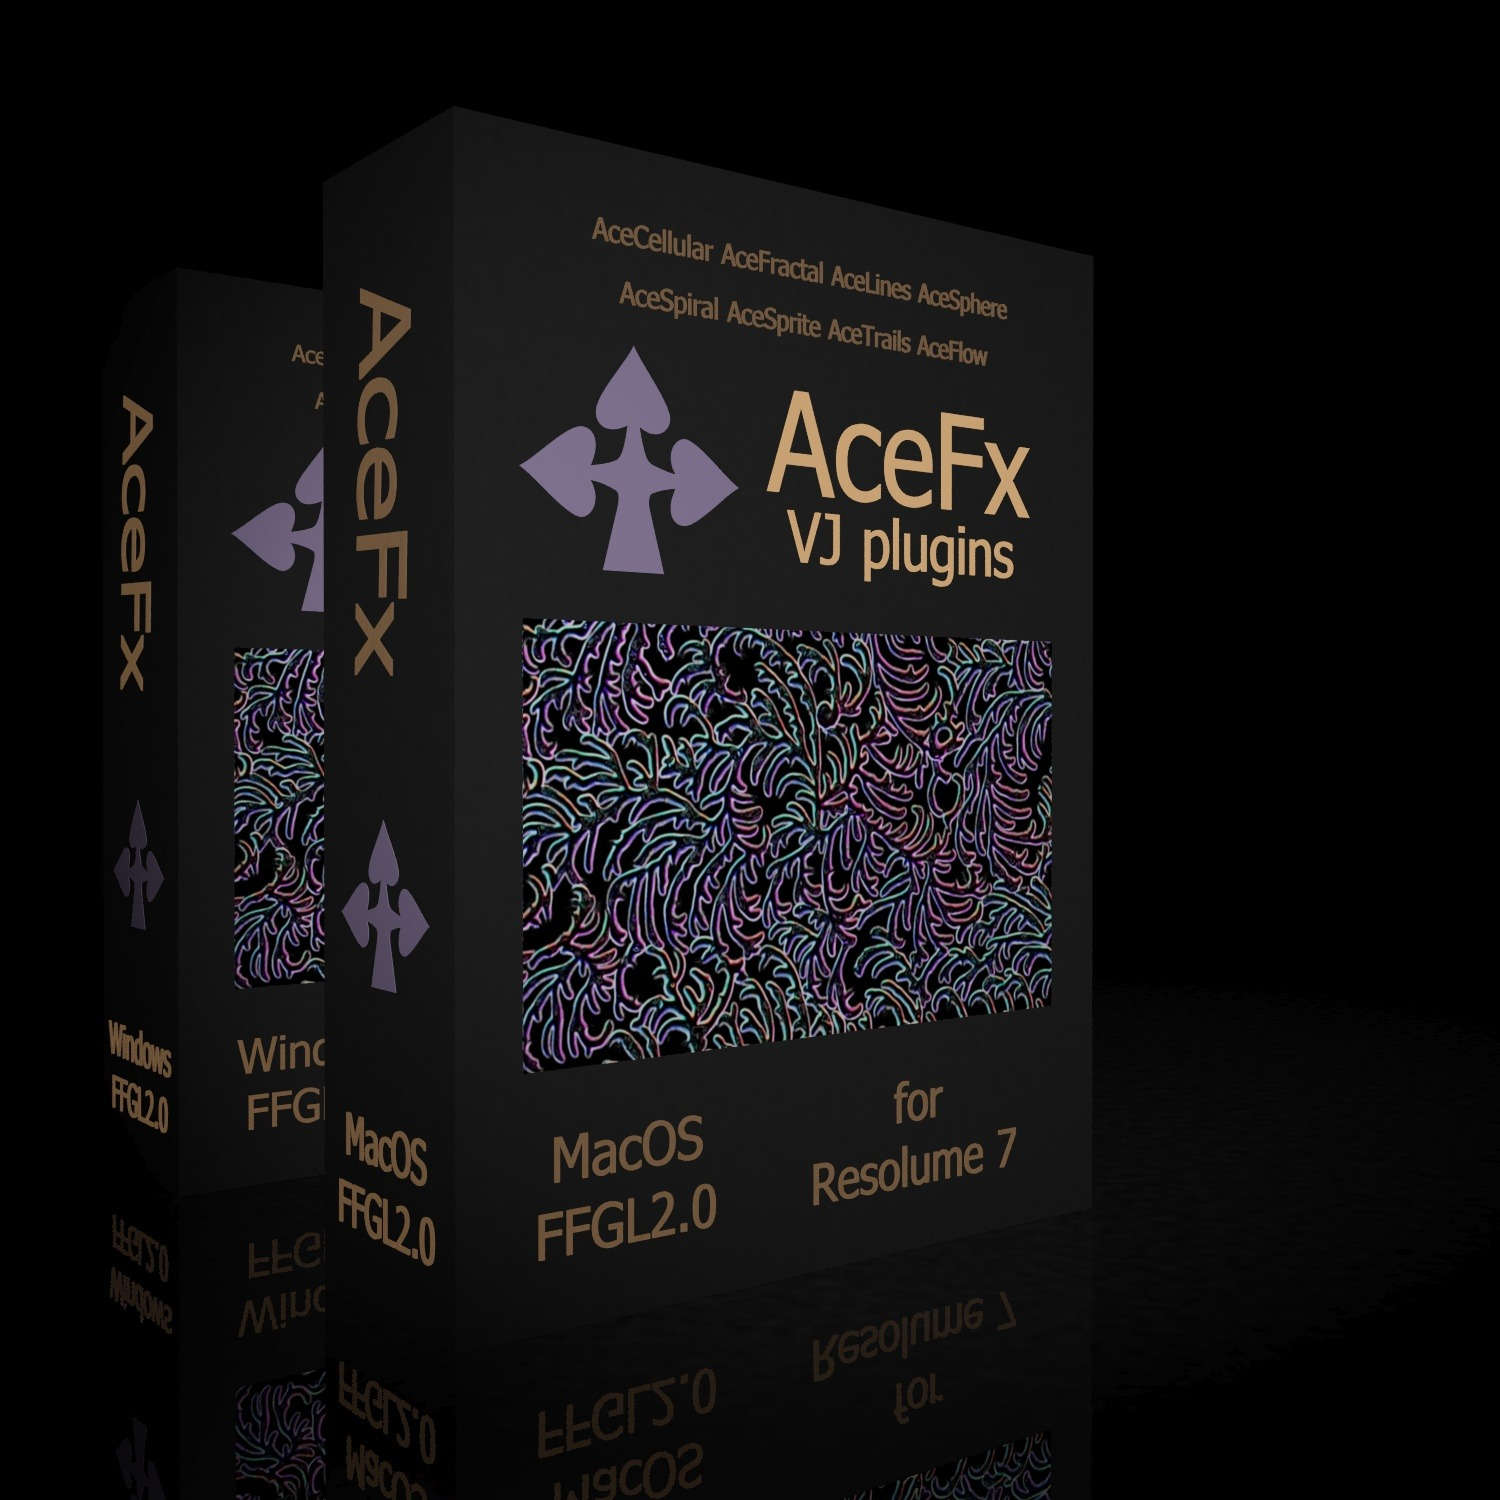 AceFX 2.0 VJ plugins for MacOS